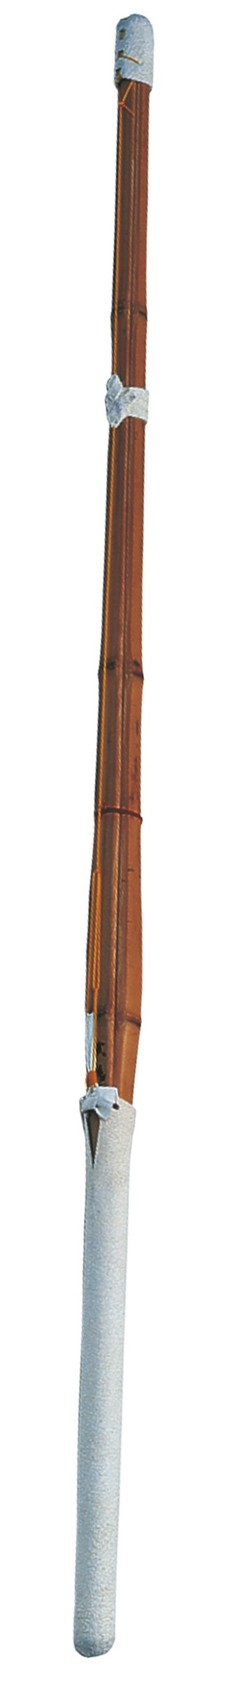 SHINAI ENFANT IMPORTATION (31) M40831